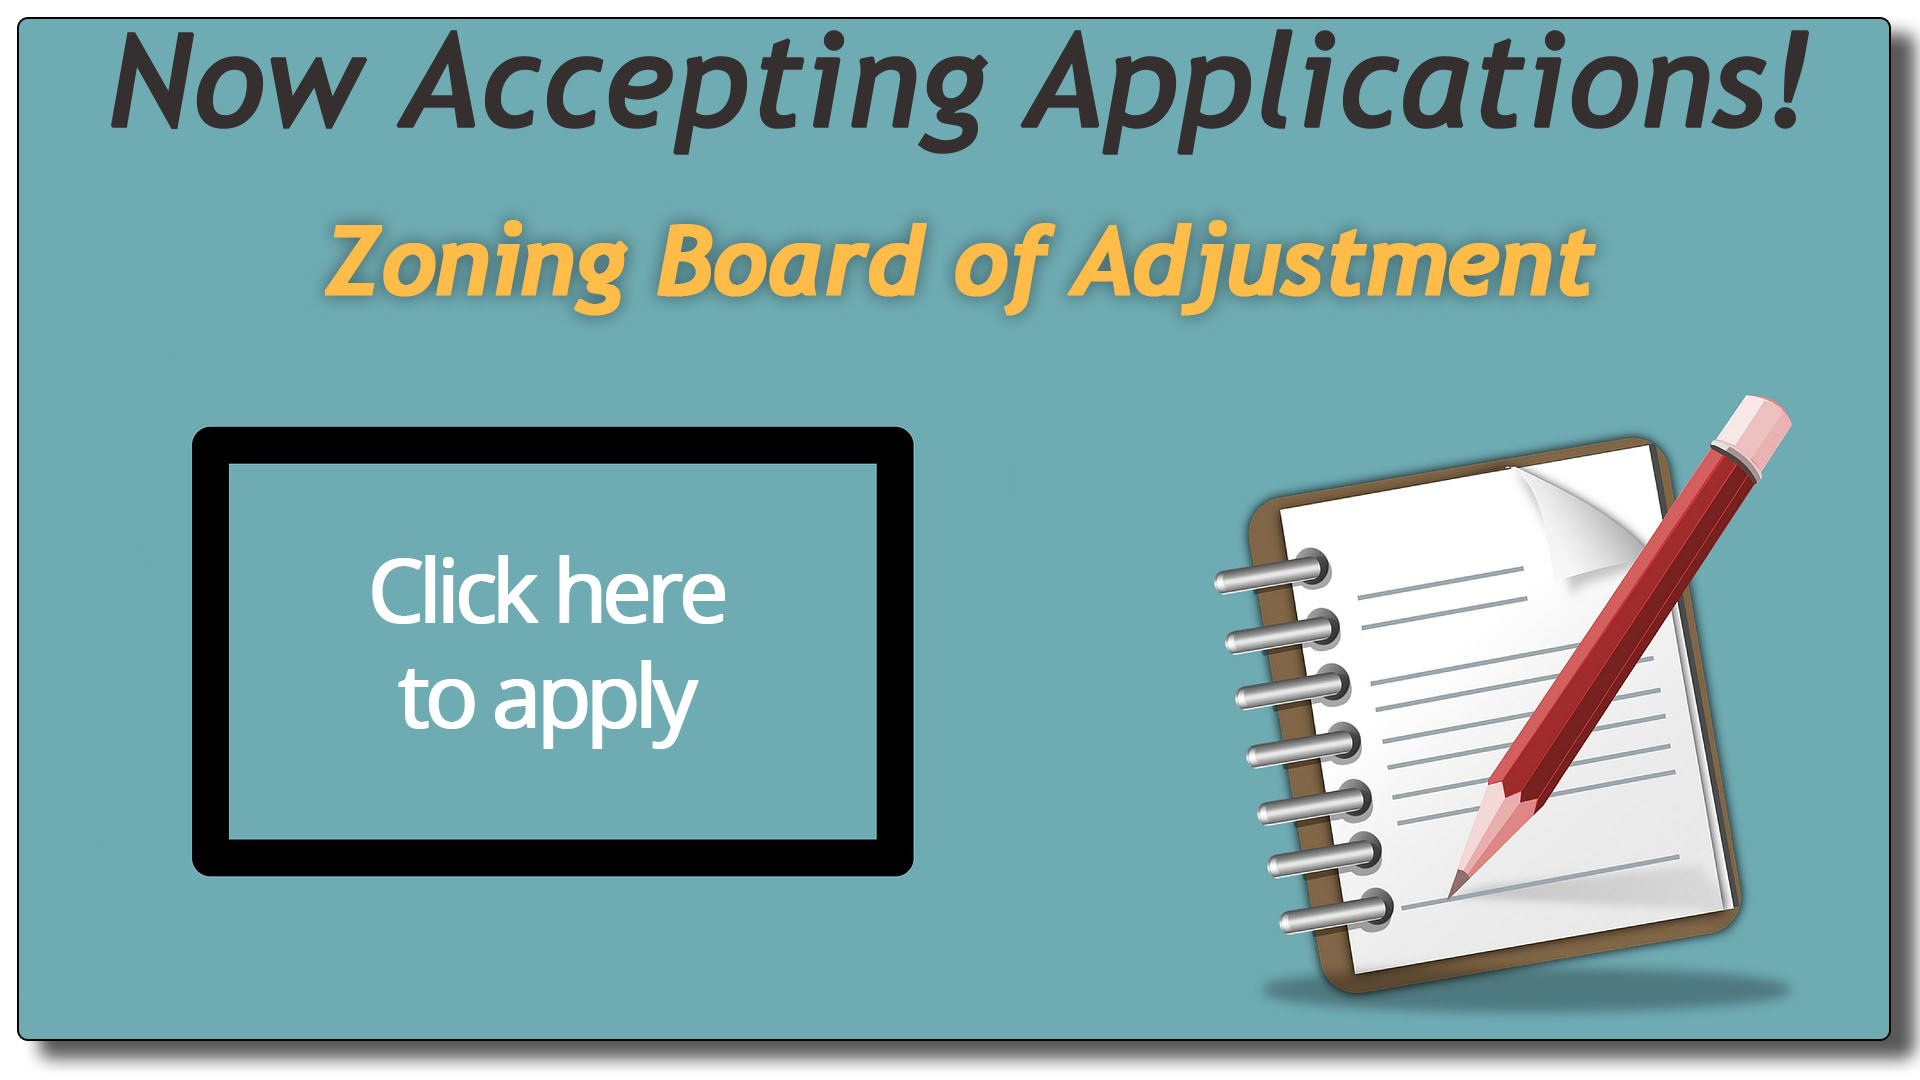 Zoning Board of Adjustment Advertisement